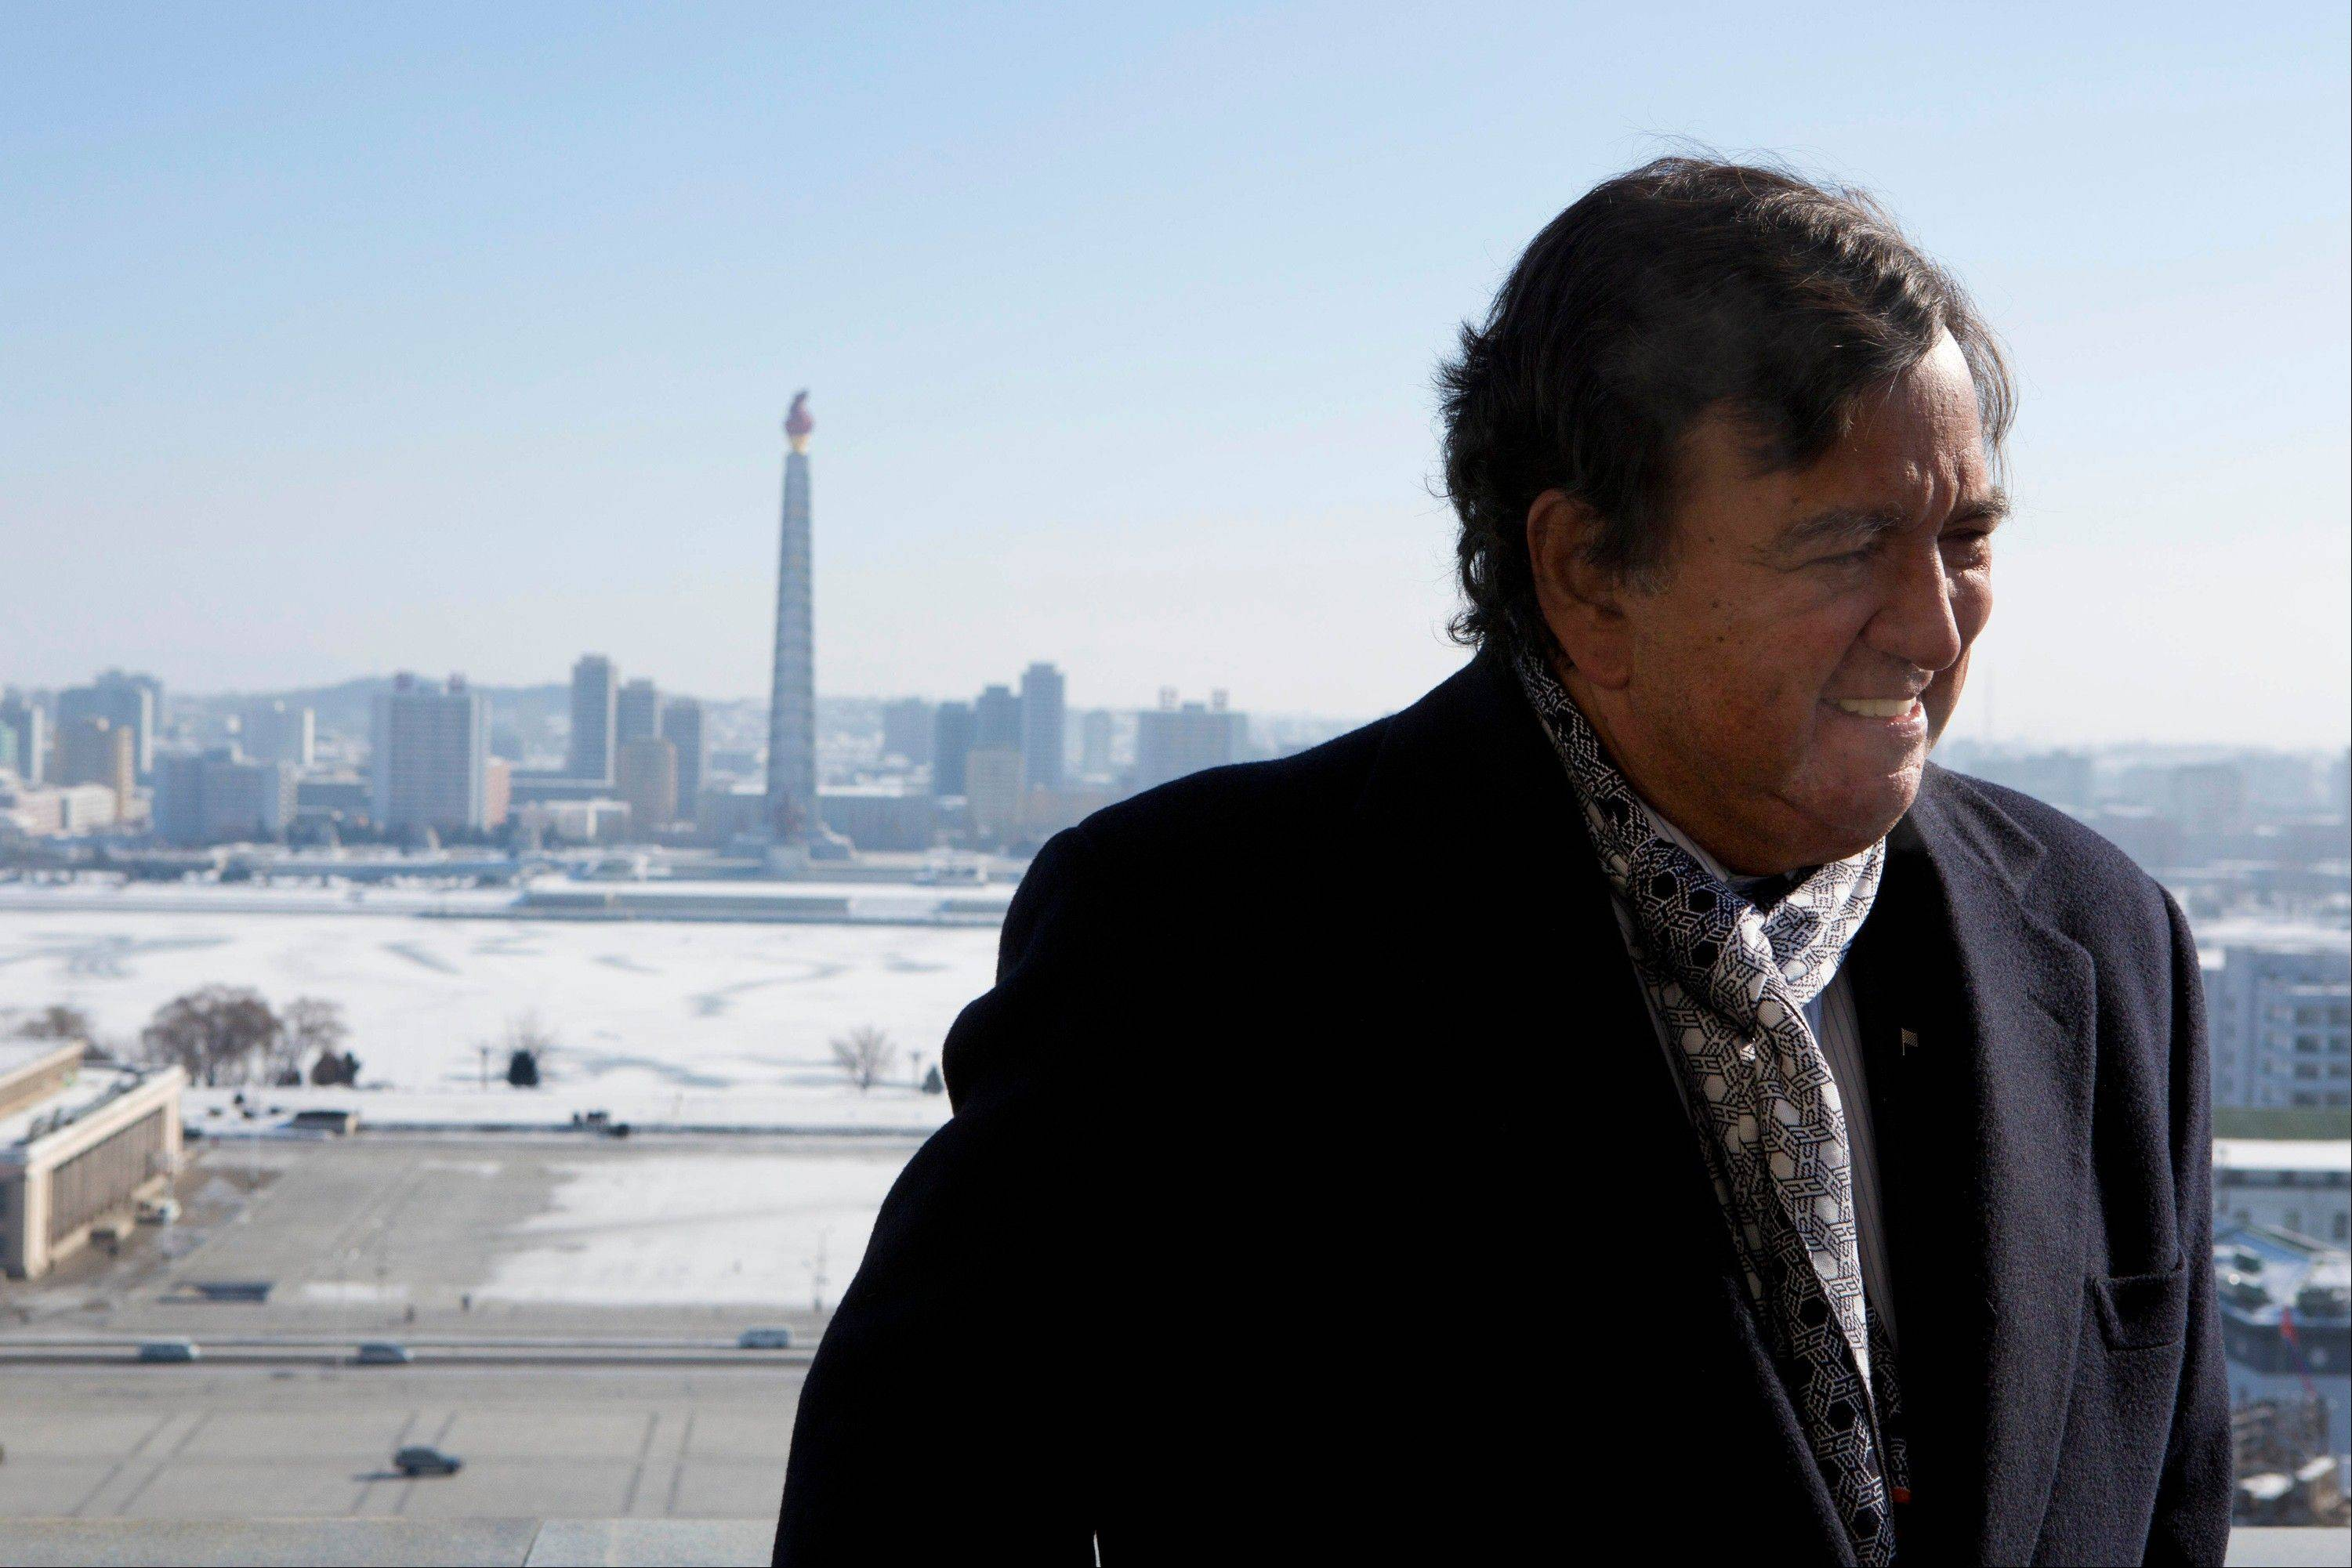 Former New Mexico Bill Richardson stands Wednesday on a balcony at the Grand Peoples Study House overlooking Juche Tower in Pyongyang, North Korea. Richardson said Wednesday that his delegation is pressing North Korea to put a moratorium on missile launches and nuclear tests and to allow more cellphones and an open Internet for its citizens.